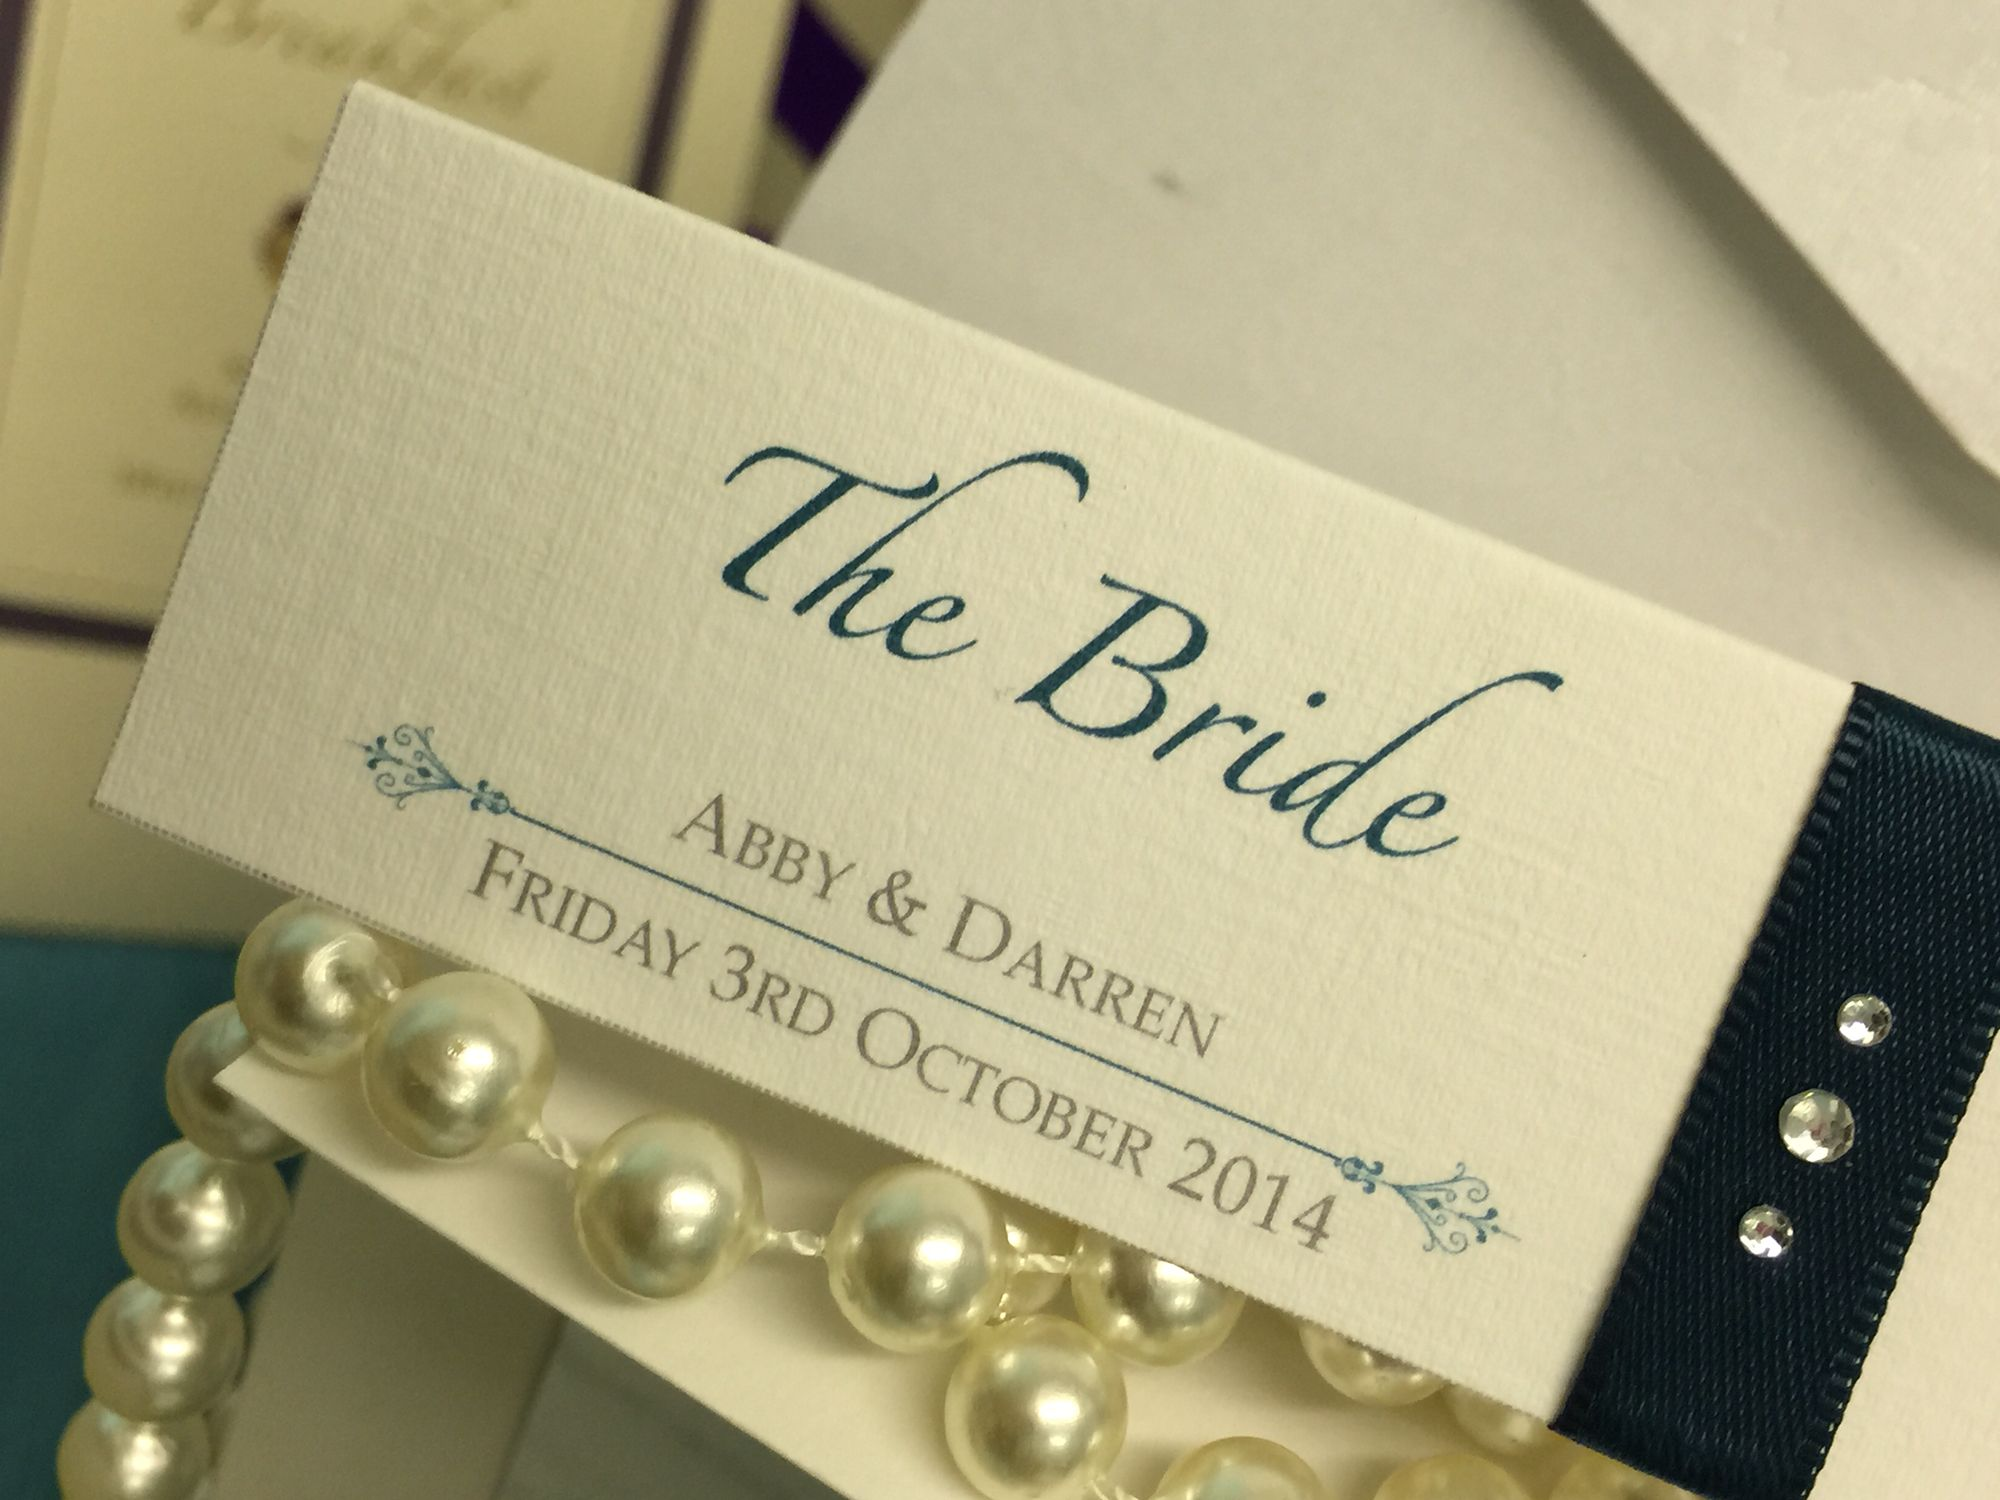 Wedding stationery London beautiful bespoke handmade teal